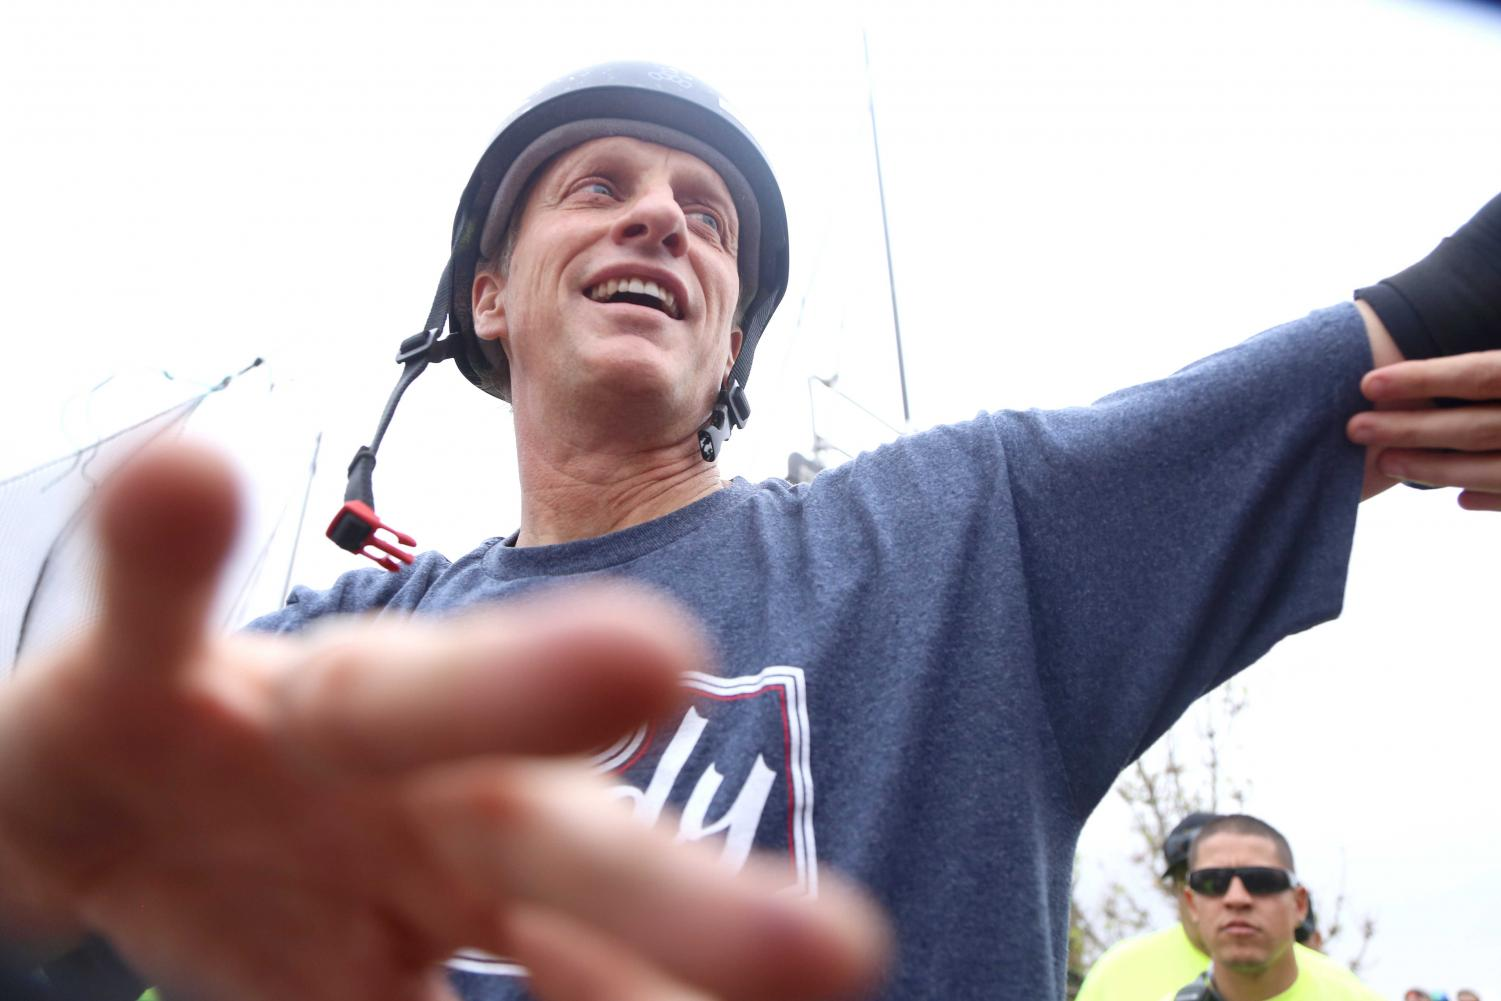 Tony+Hawk+high+fives+the+crowd+after+he+skates+at+the+Pakitu+Skate+Plaza+on+Saturday%2C+March+24.+